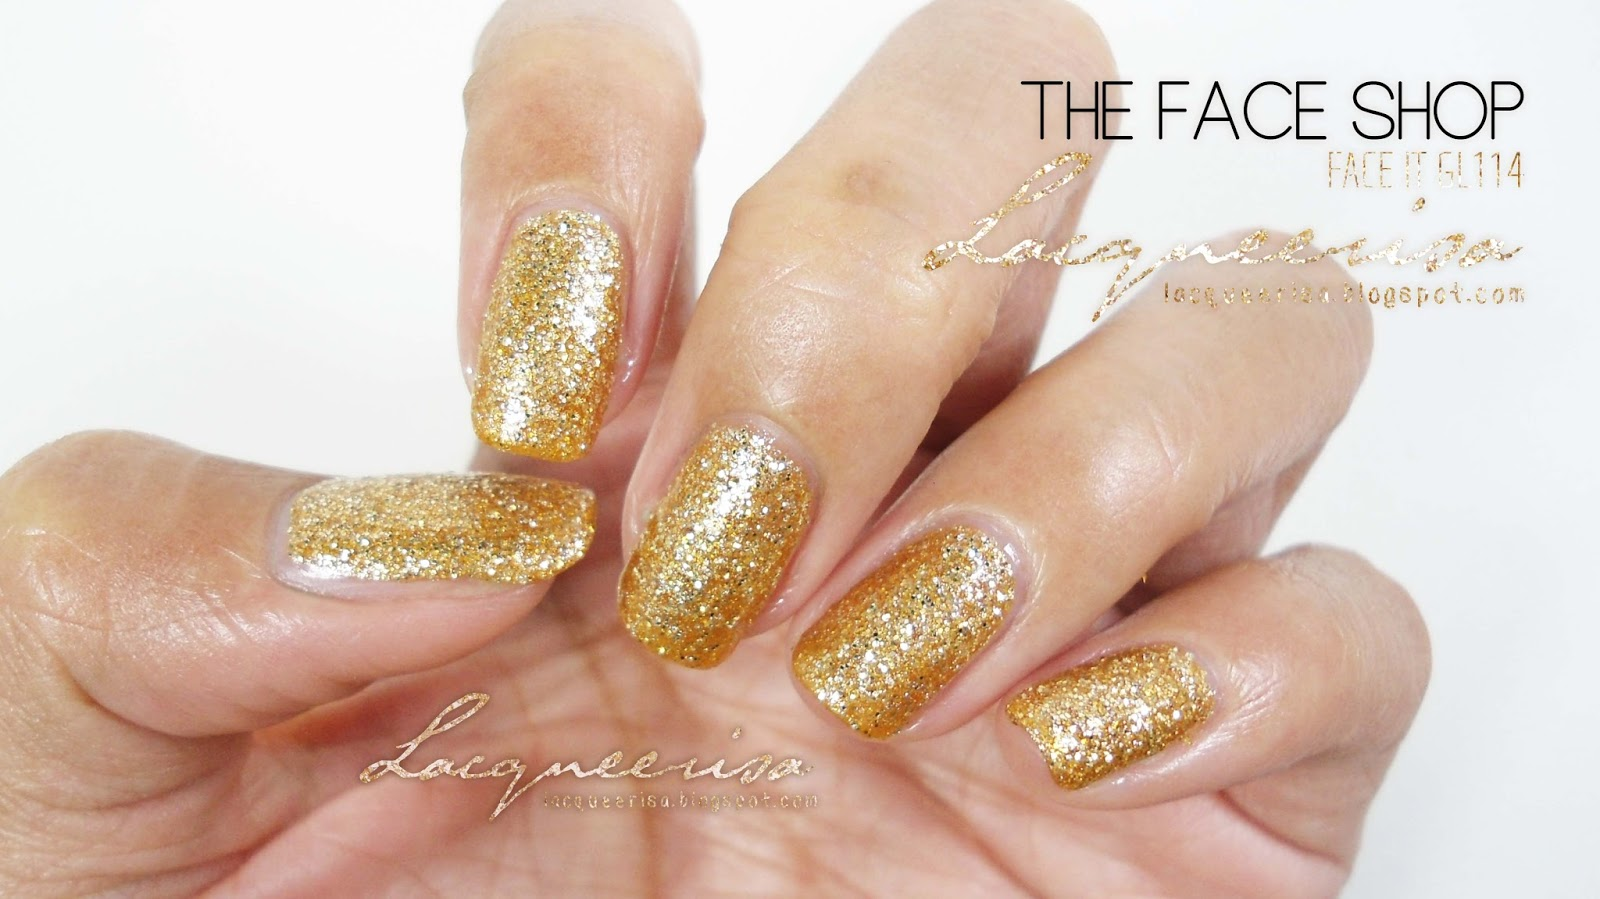 Lacqueerisa: The Face Shop GL114 (with topcoat)